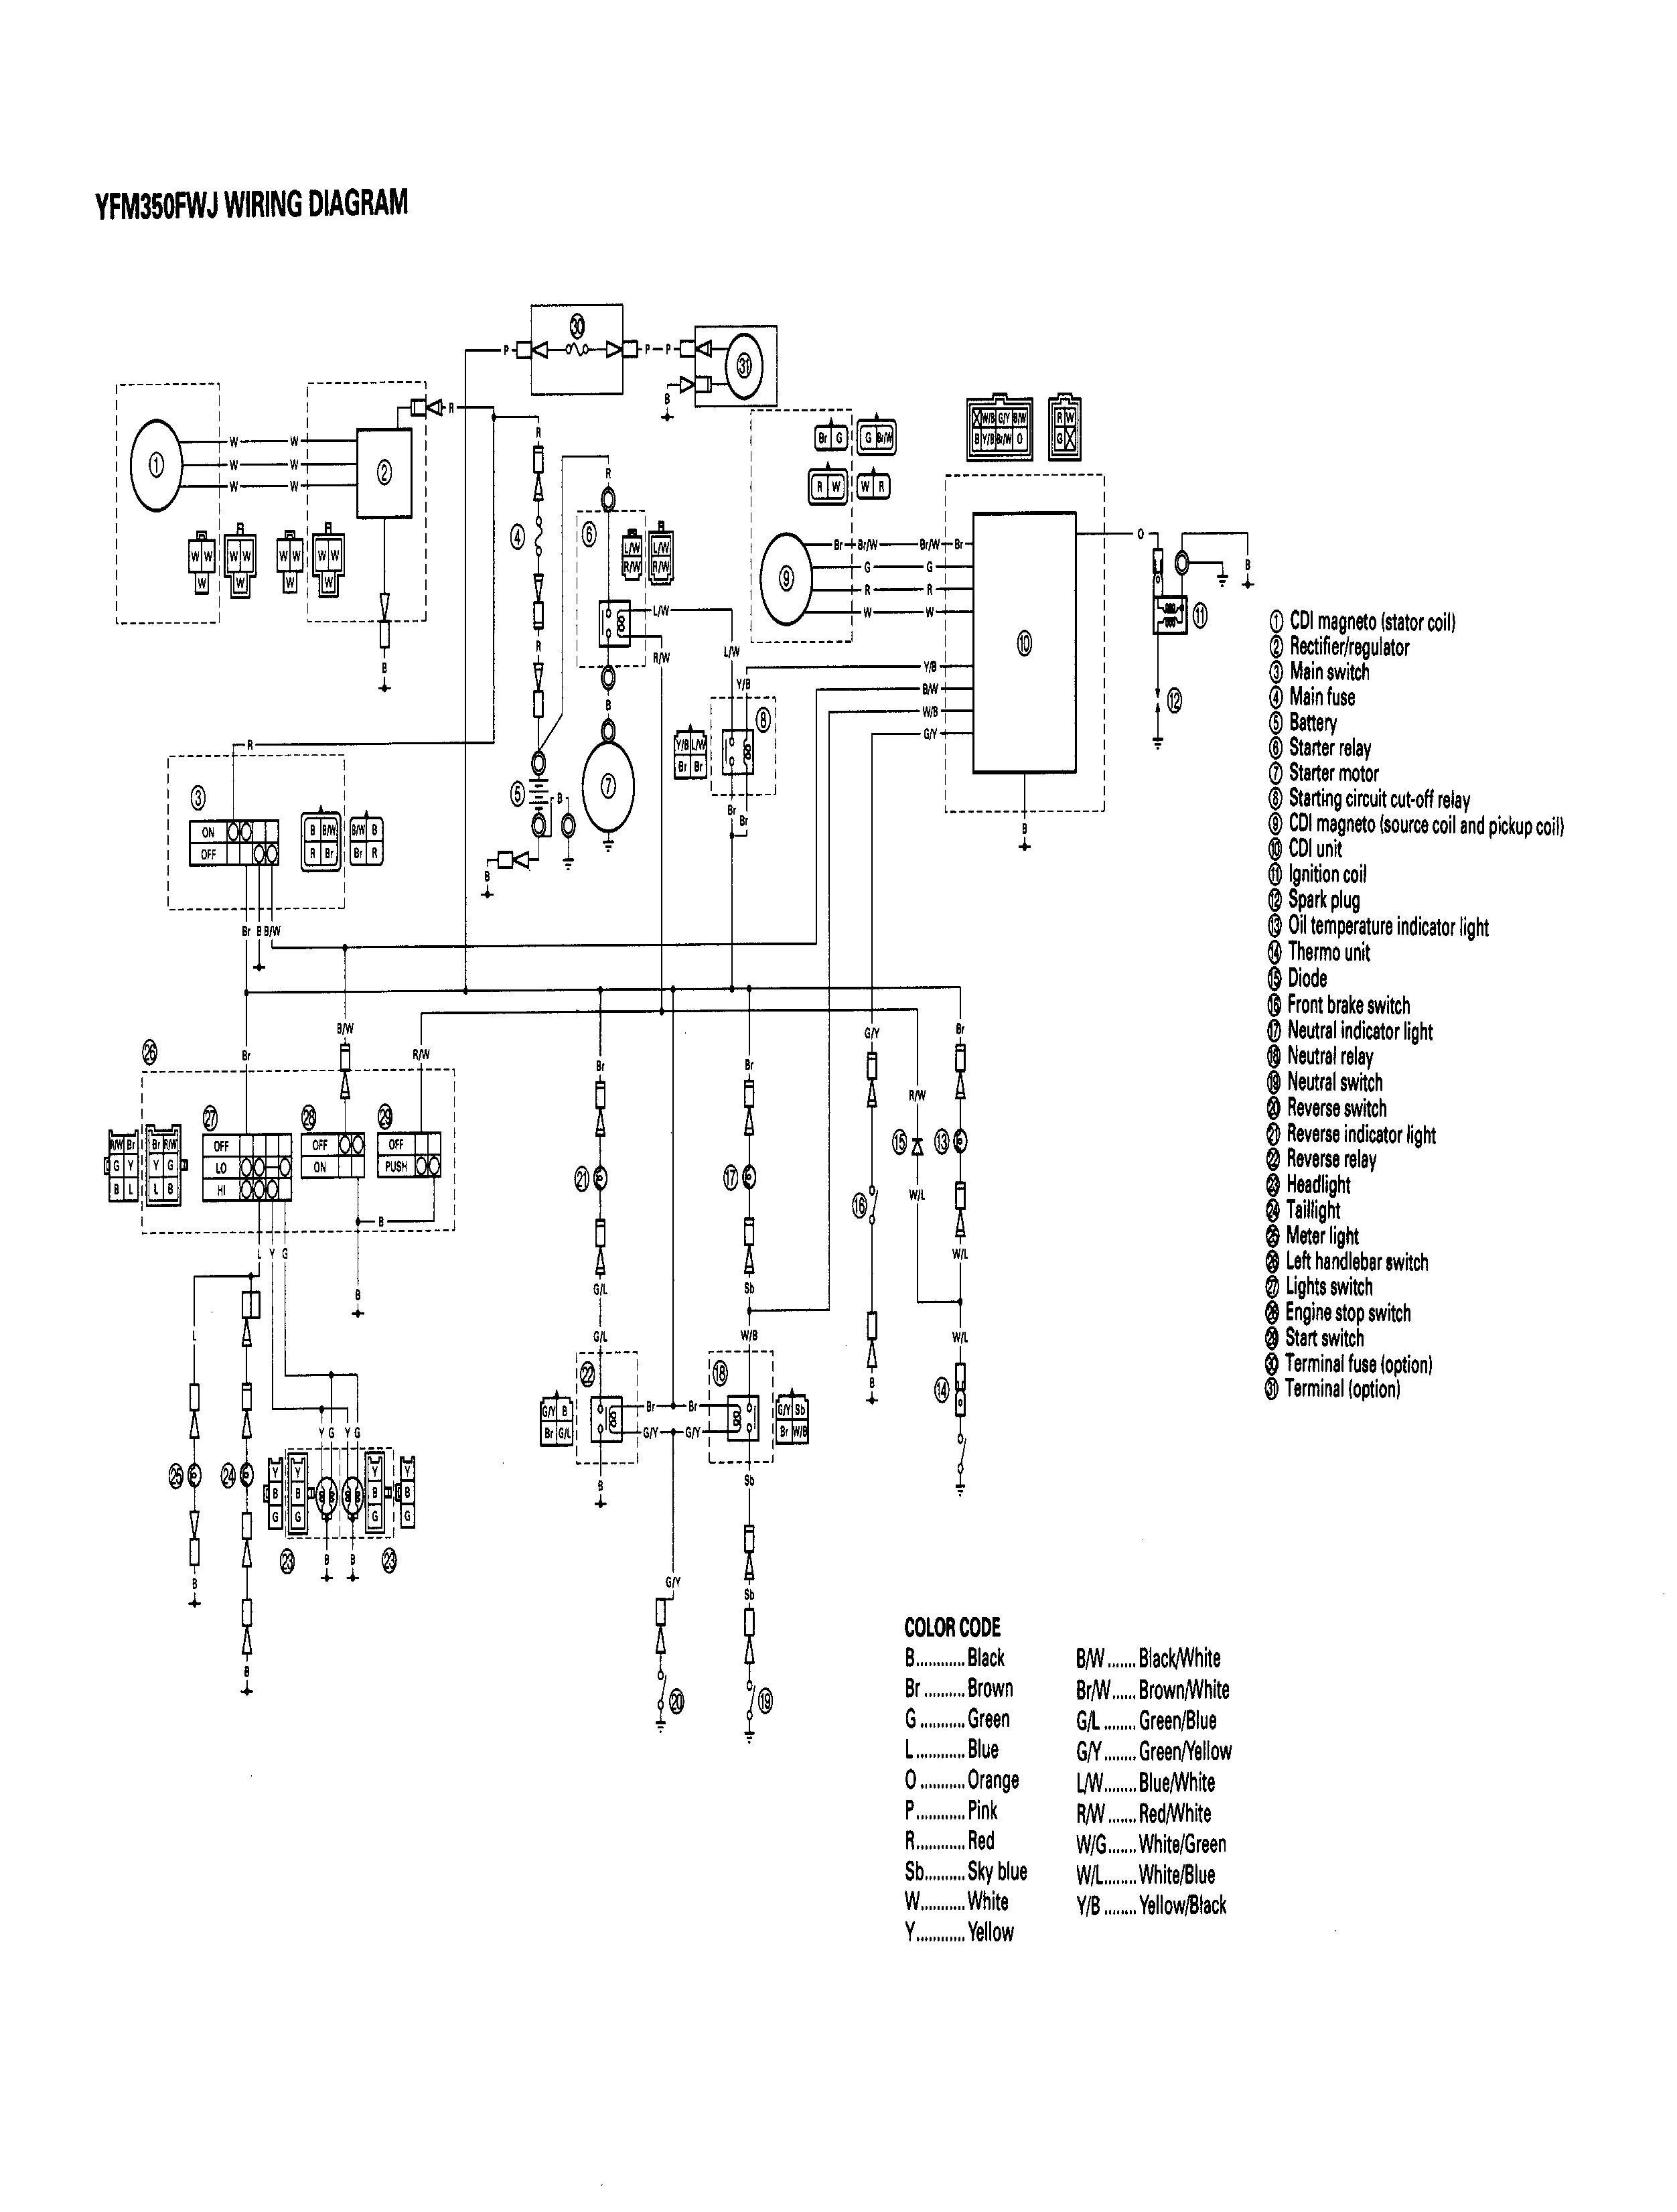 Yamaha Bruin Wiring | Wiring Diagram Manual